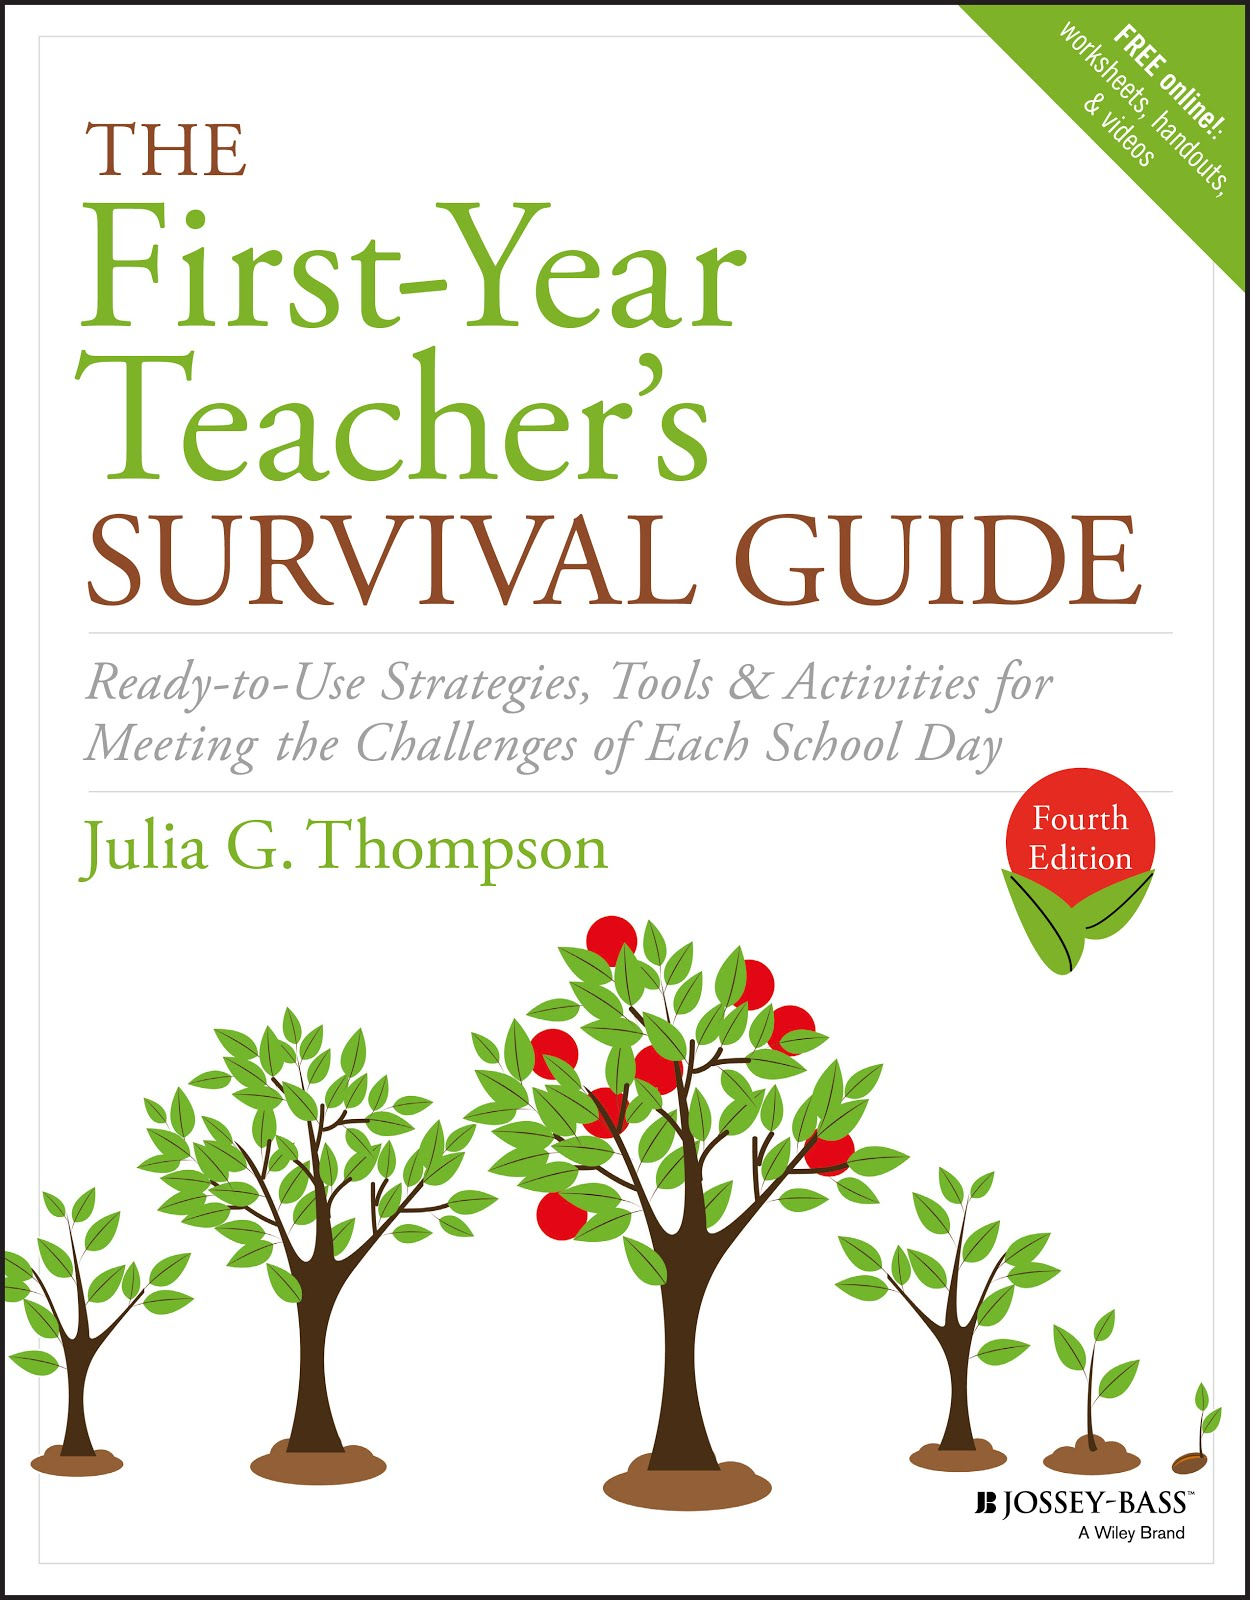 The First-Year Teacher's Survival Guide, Fourth Edition